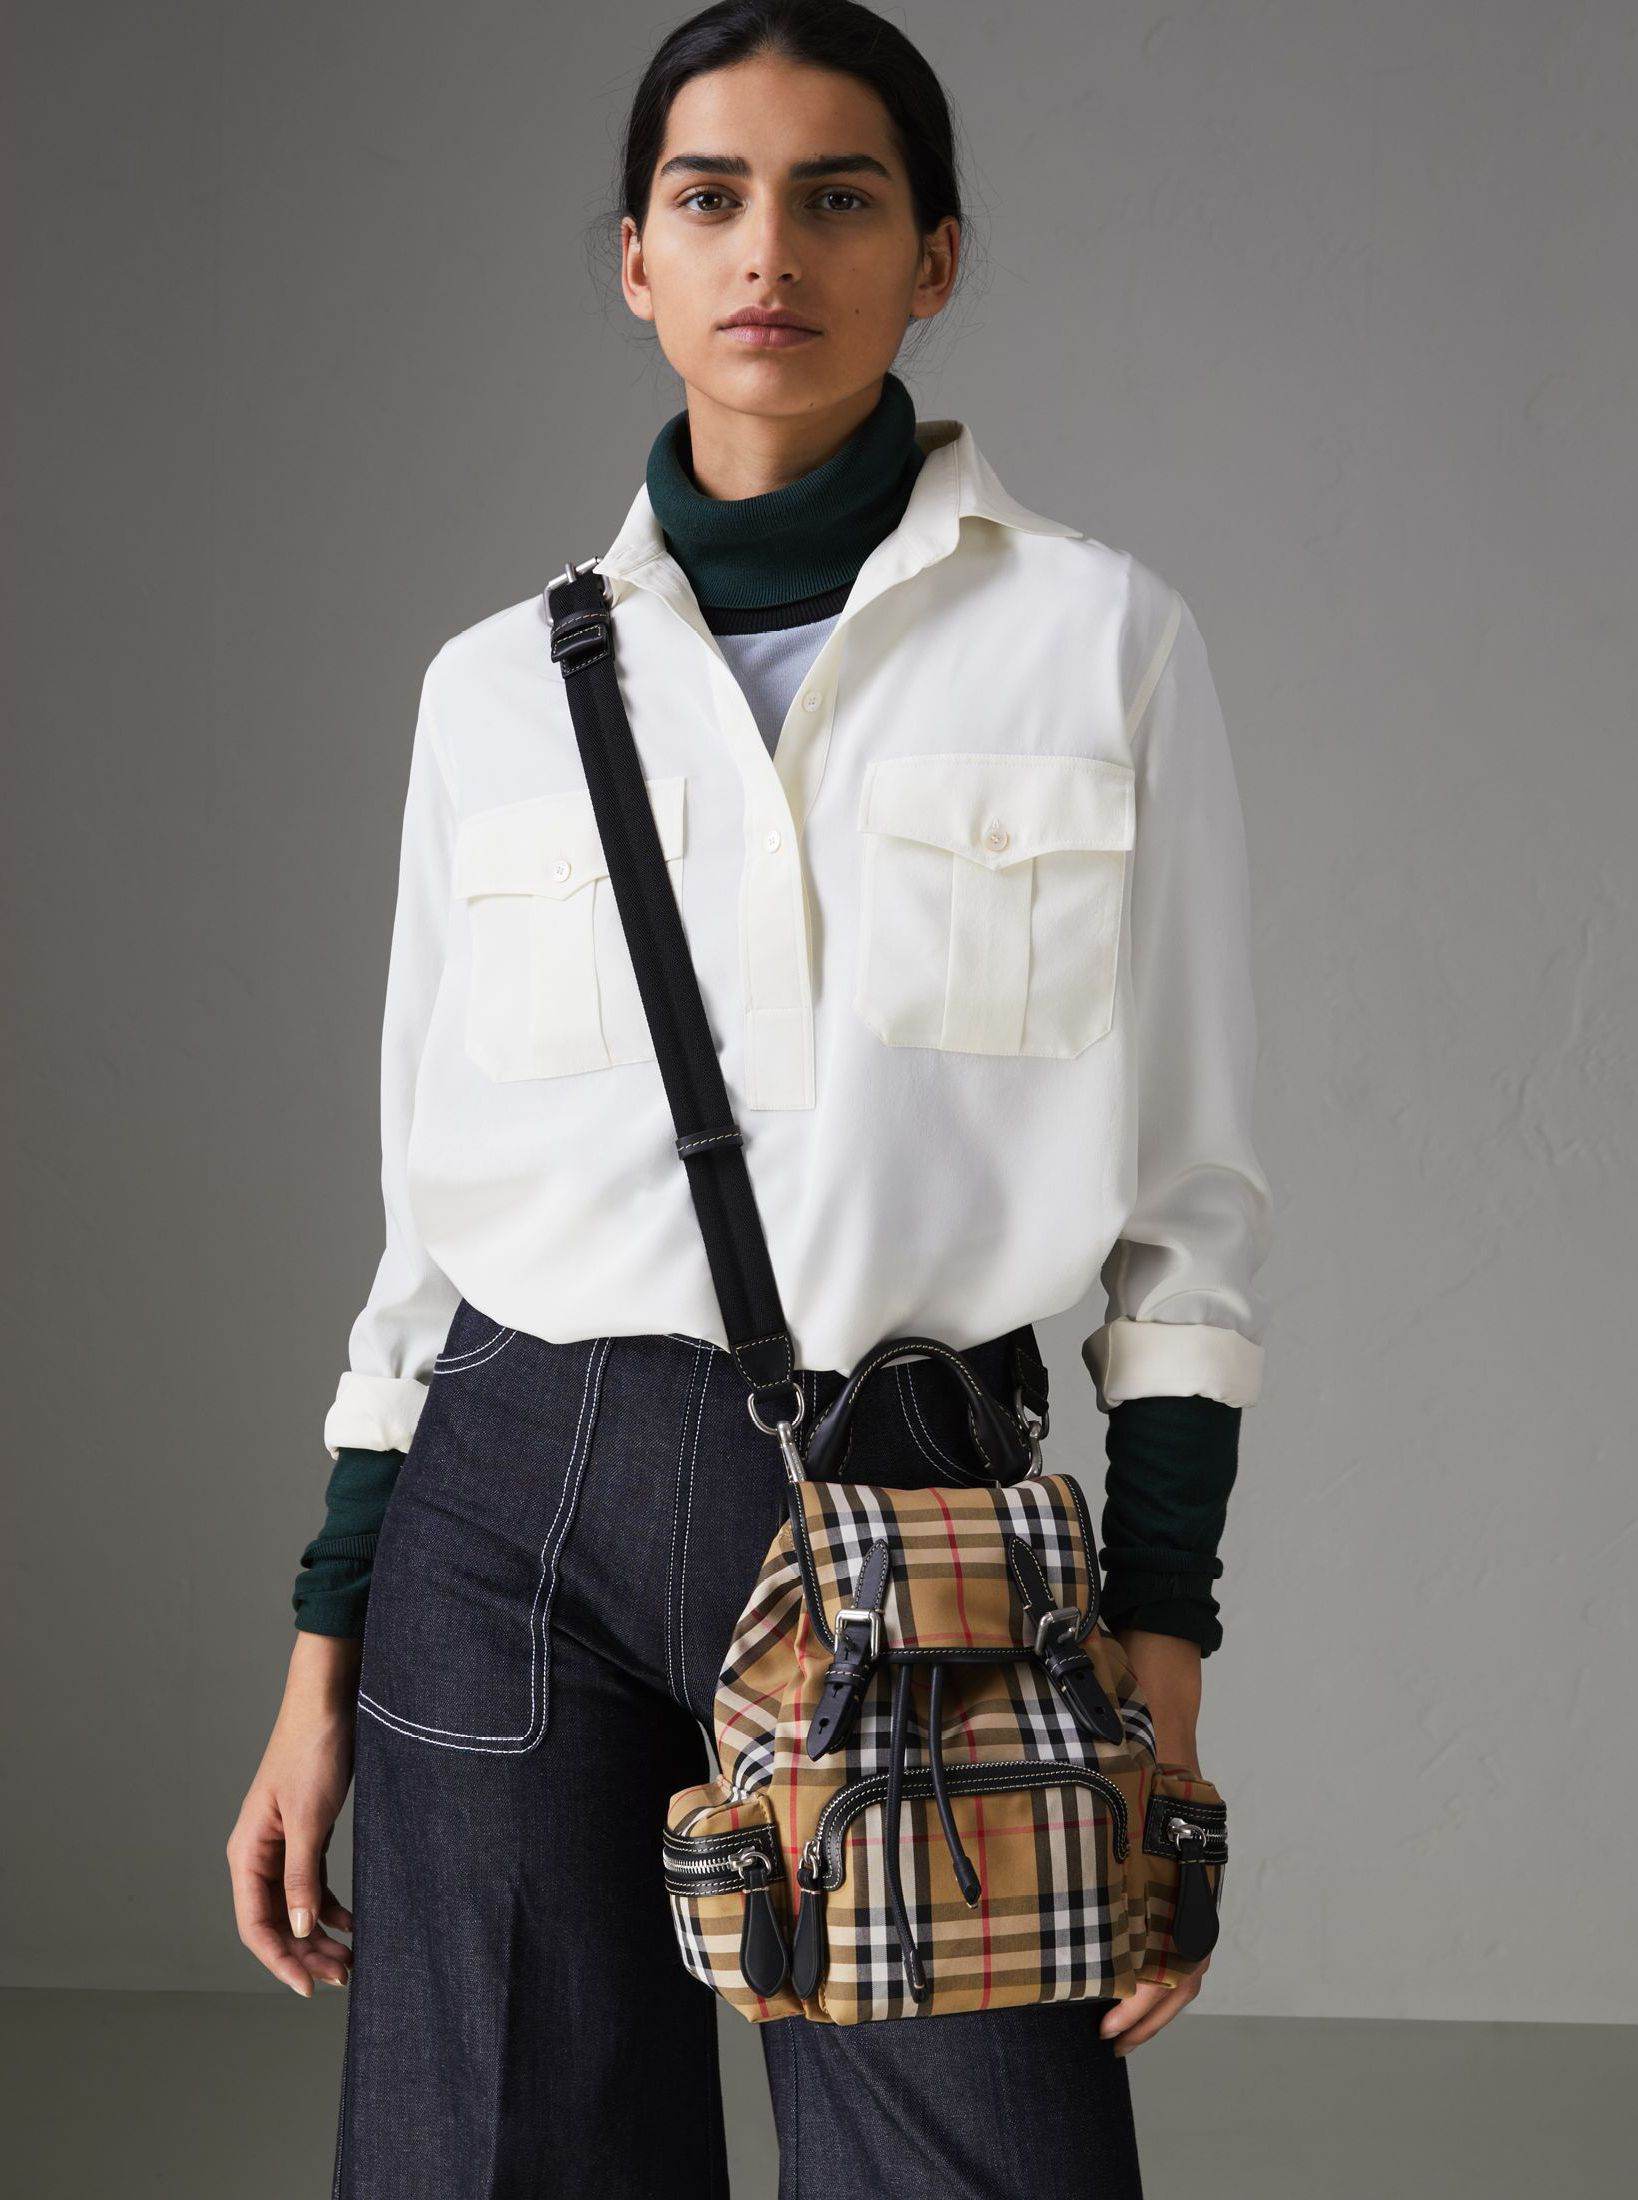 ... our timeless  Burberry backpack is updated in Vintage check cotton and  leather trims with an additional strap for crossbody carrying. 5c6edf3034a1e